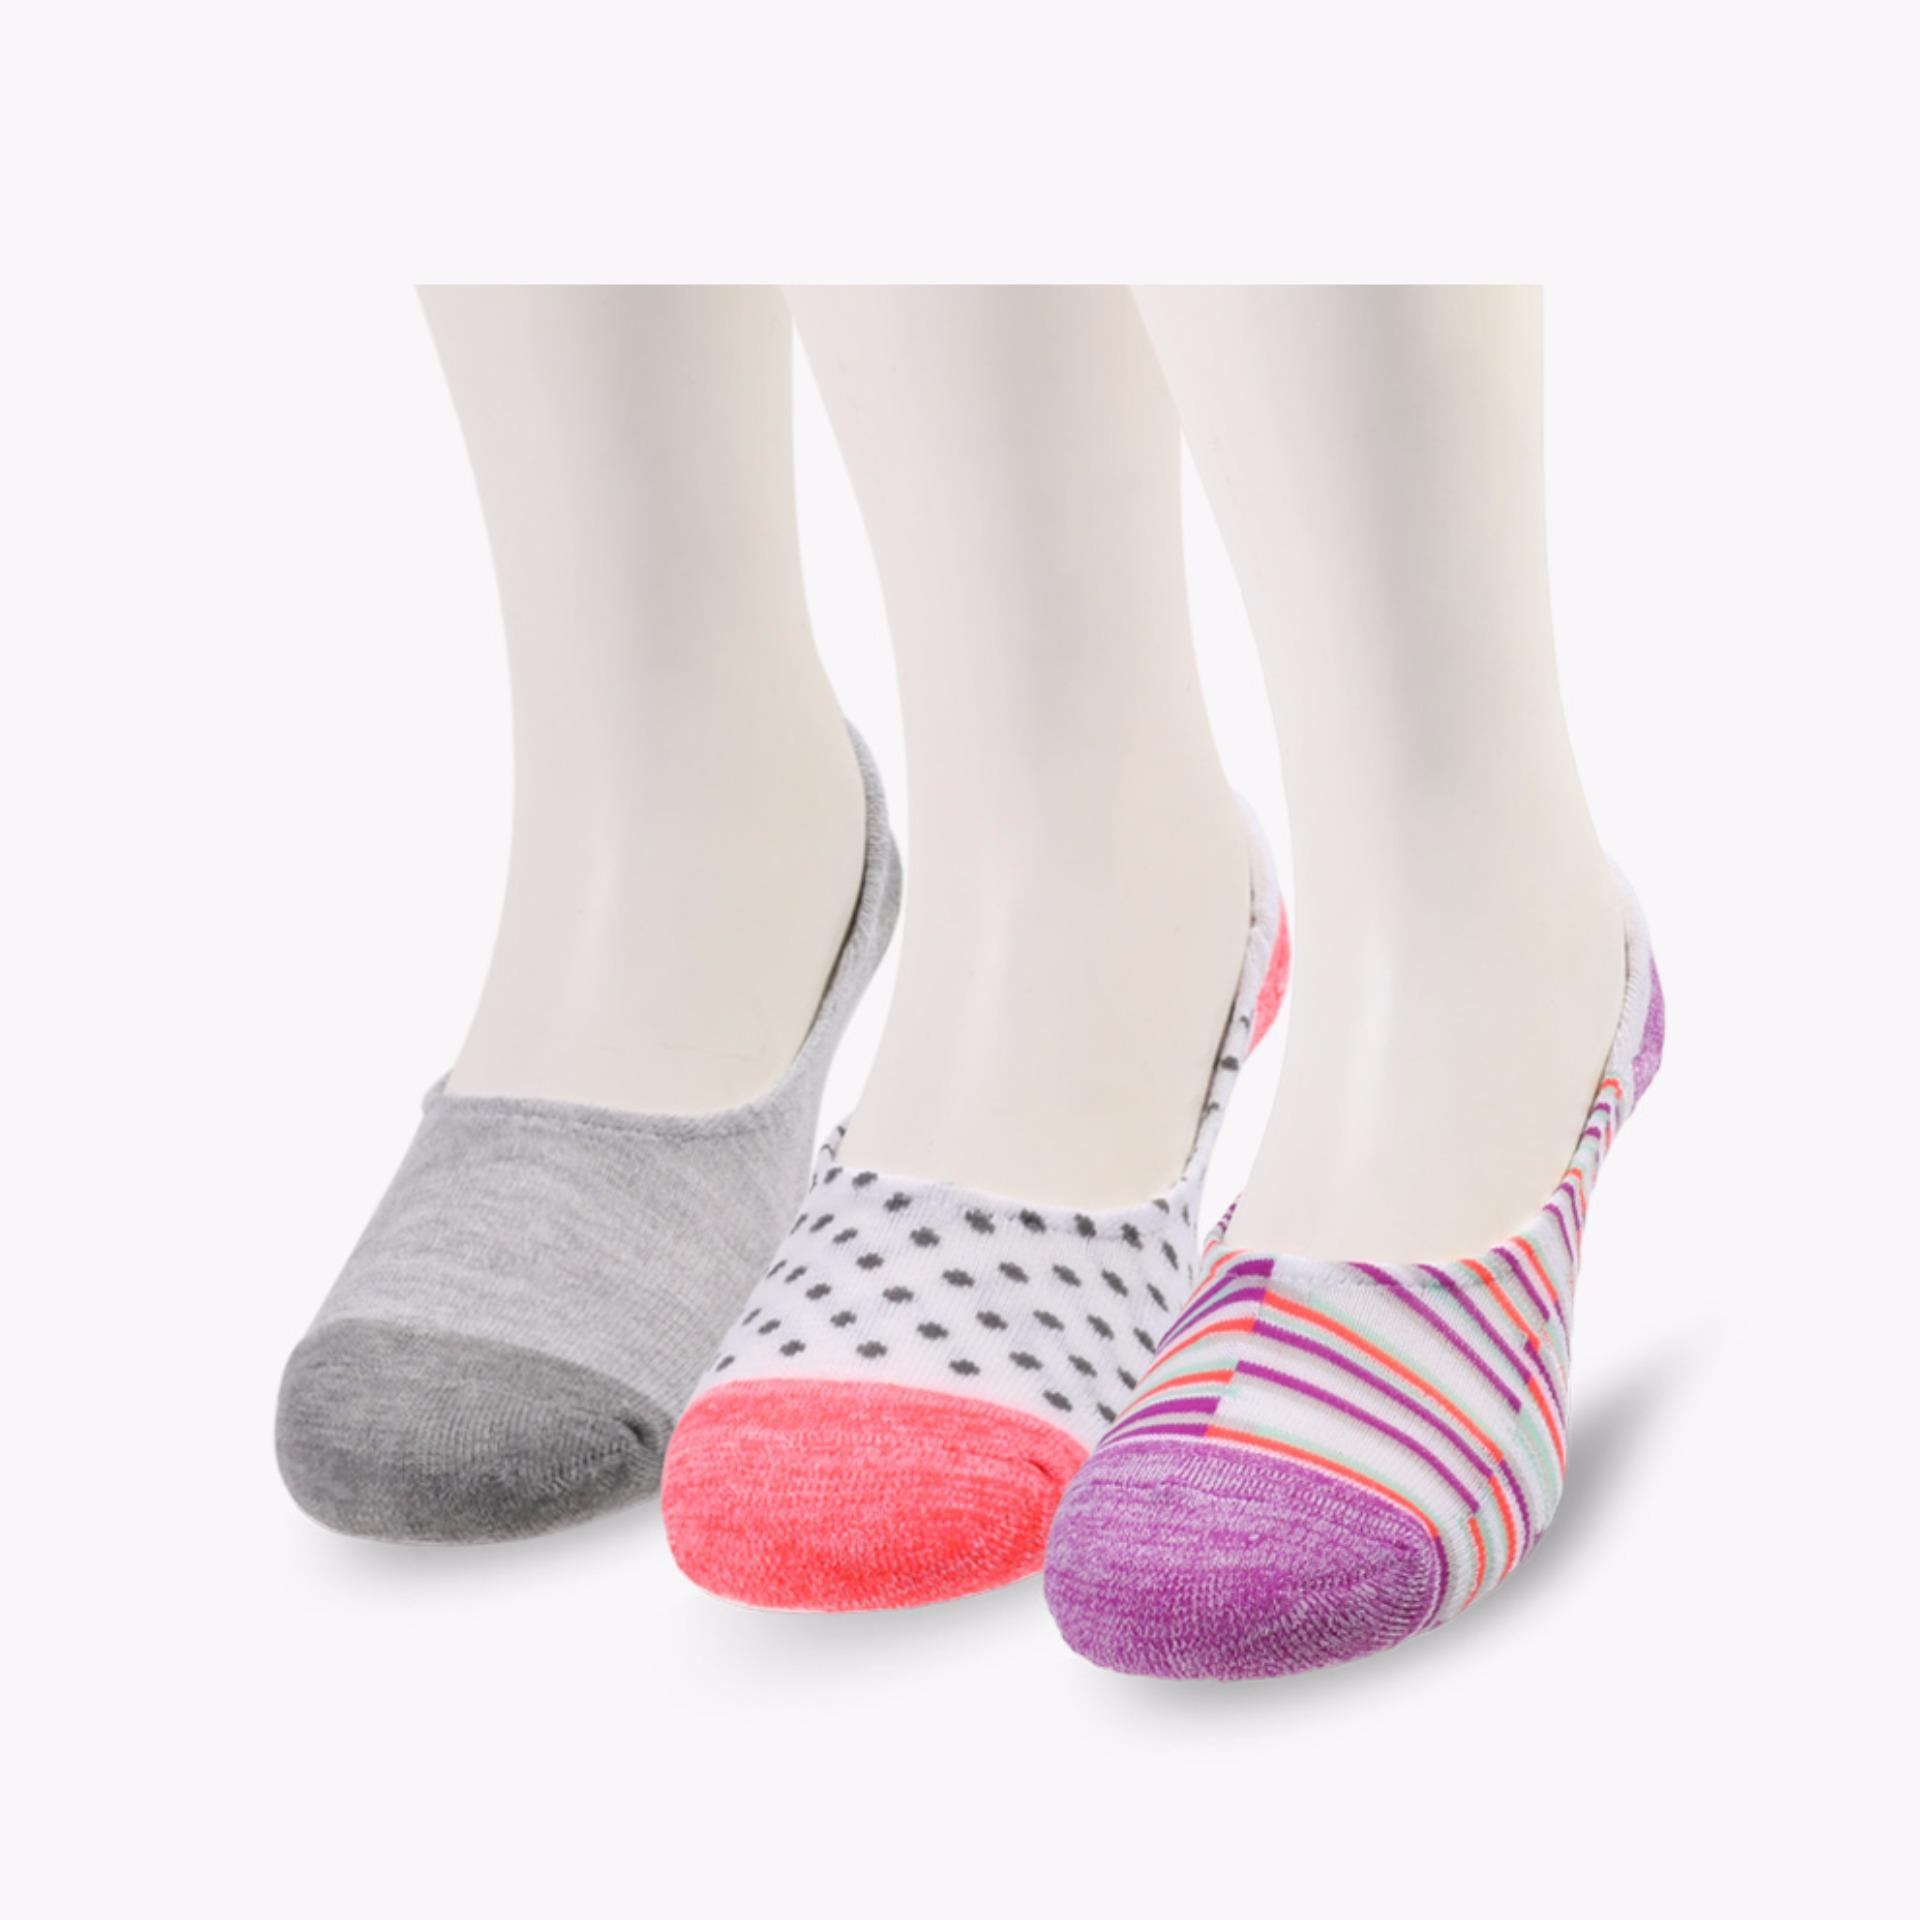 Jual Beli Skechers Relaxed Fit Expected Gomel Women S Socks Multicolor Jawa Barat